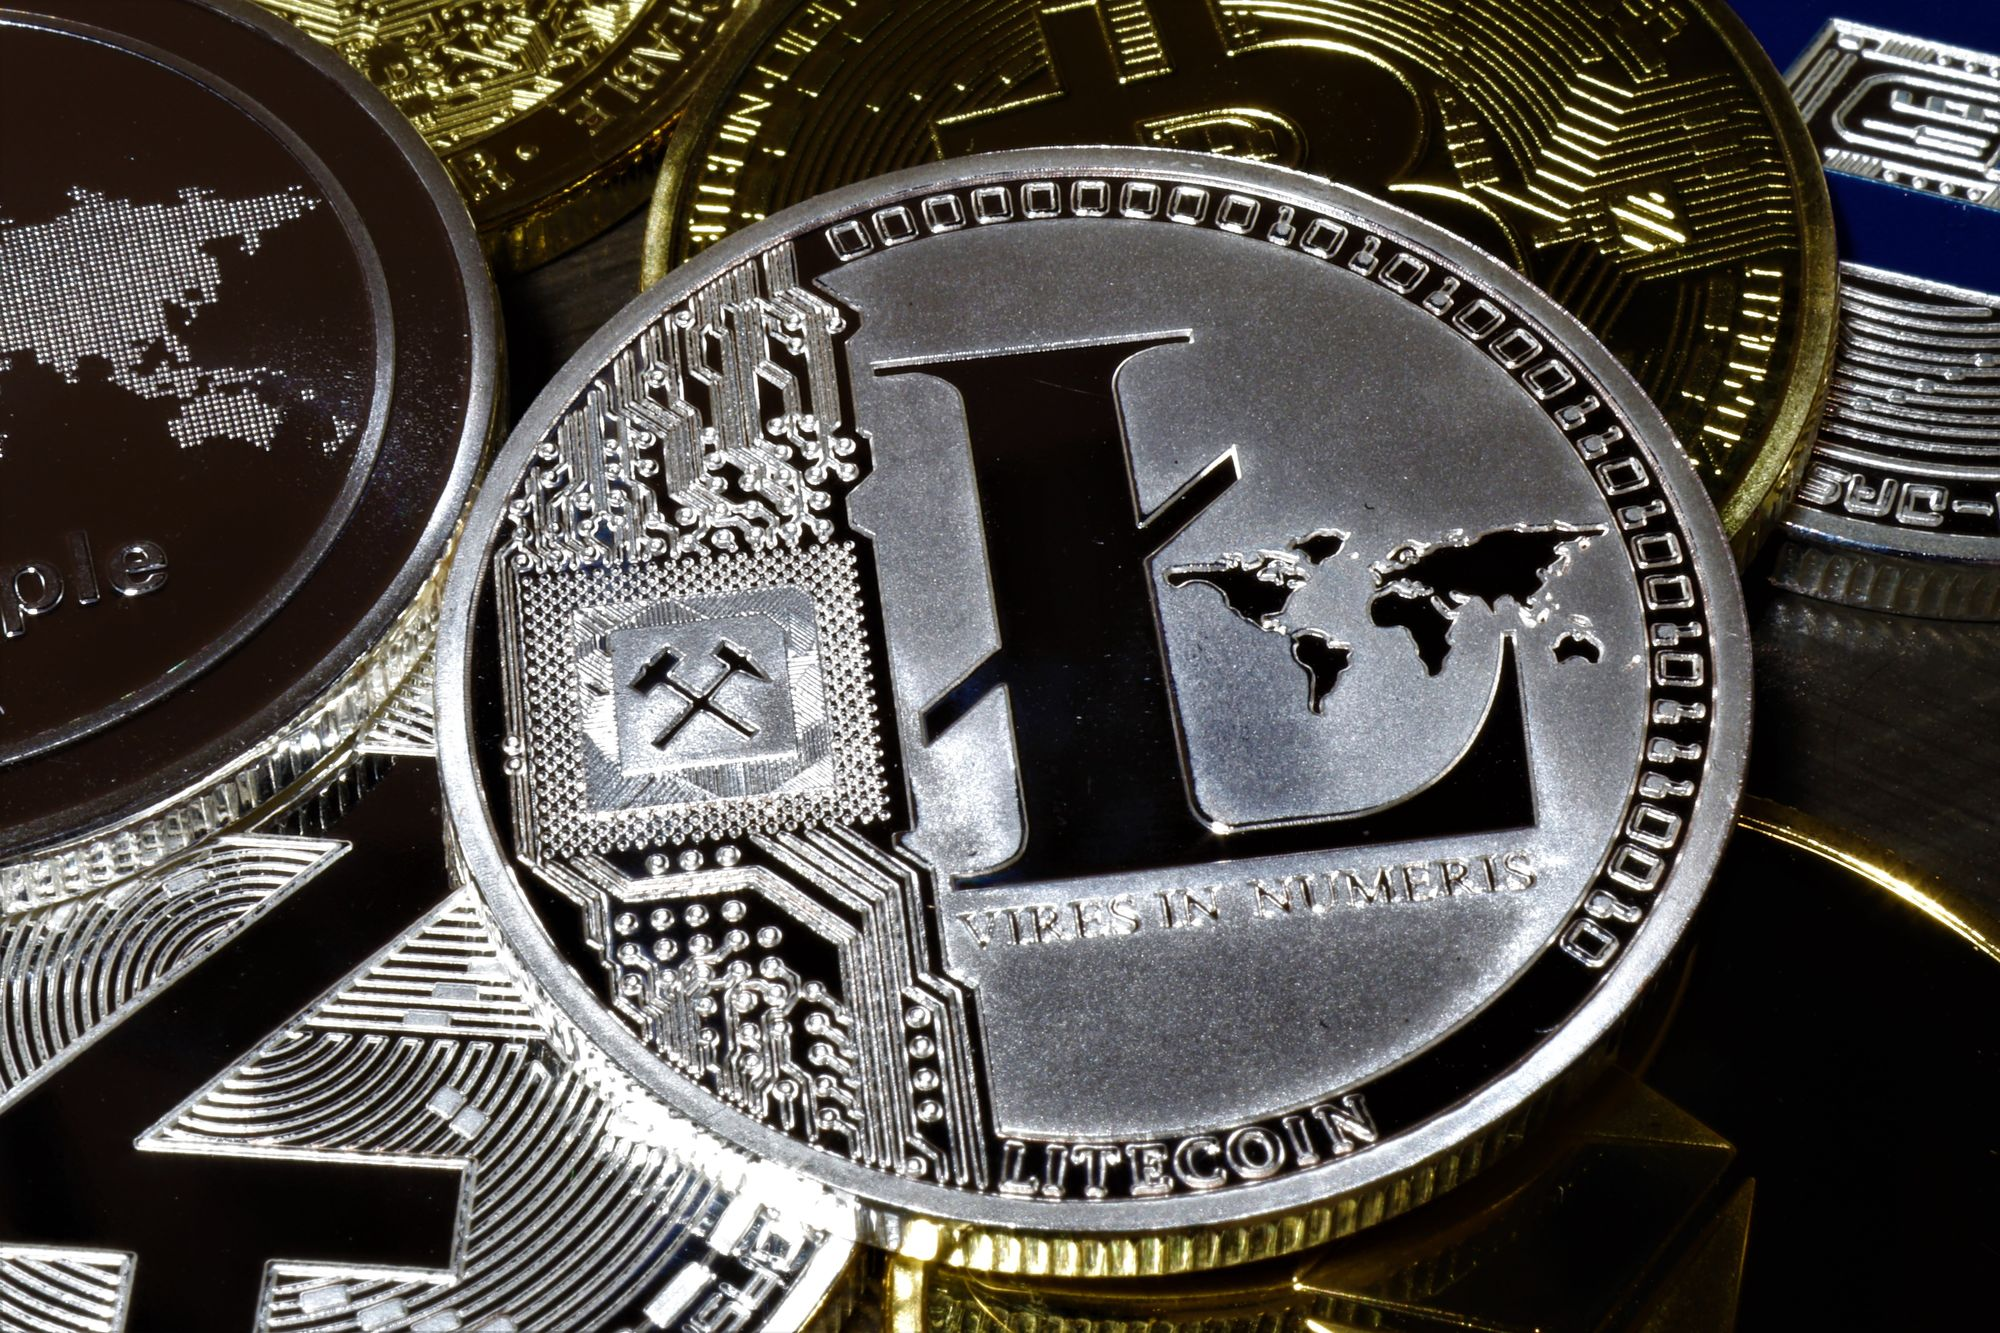 What is a Litecoin and how does it work?